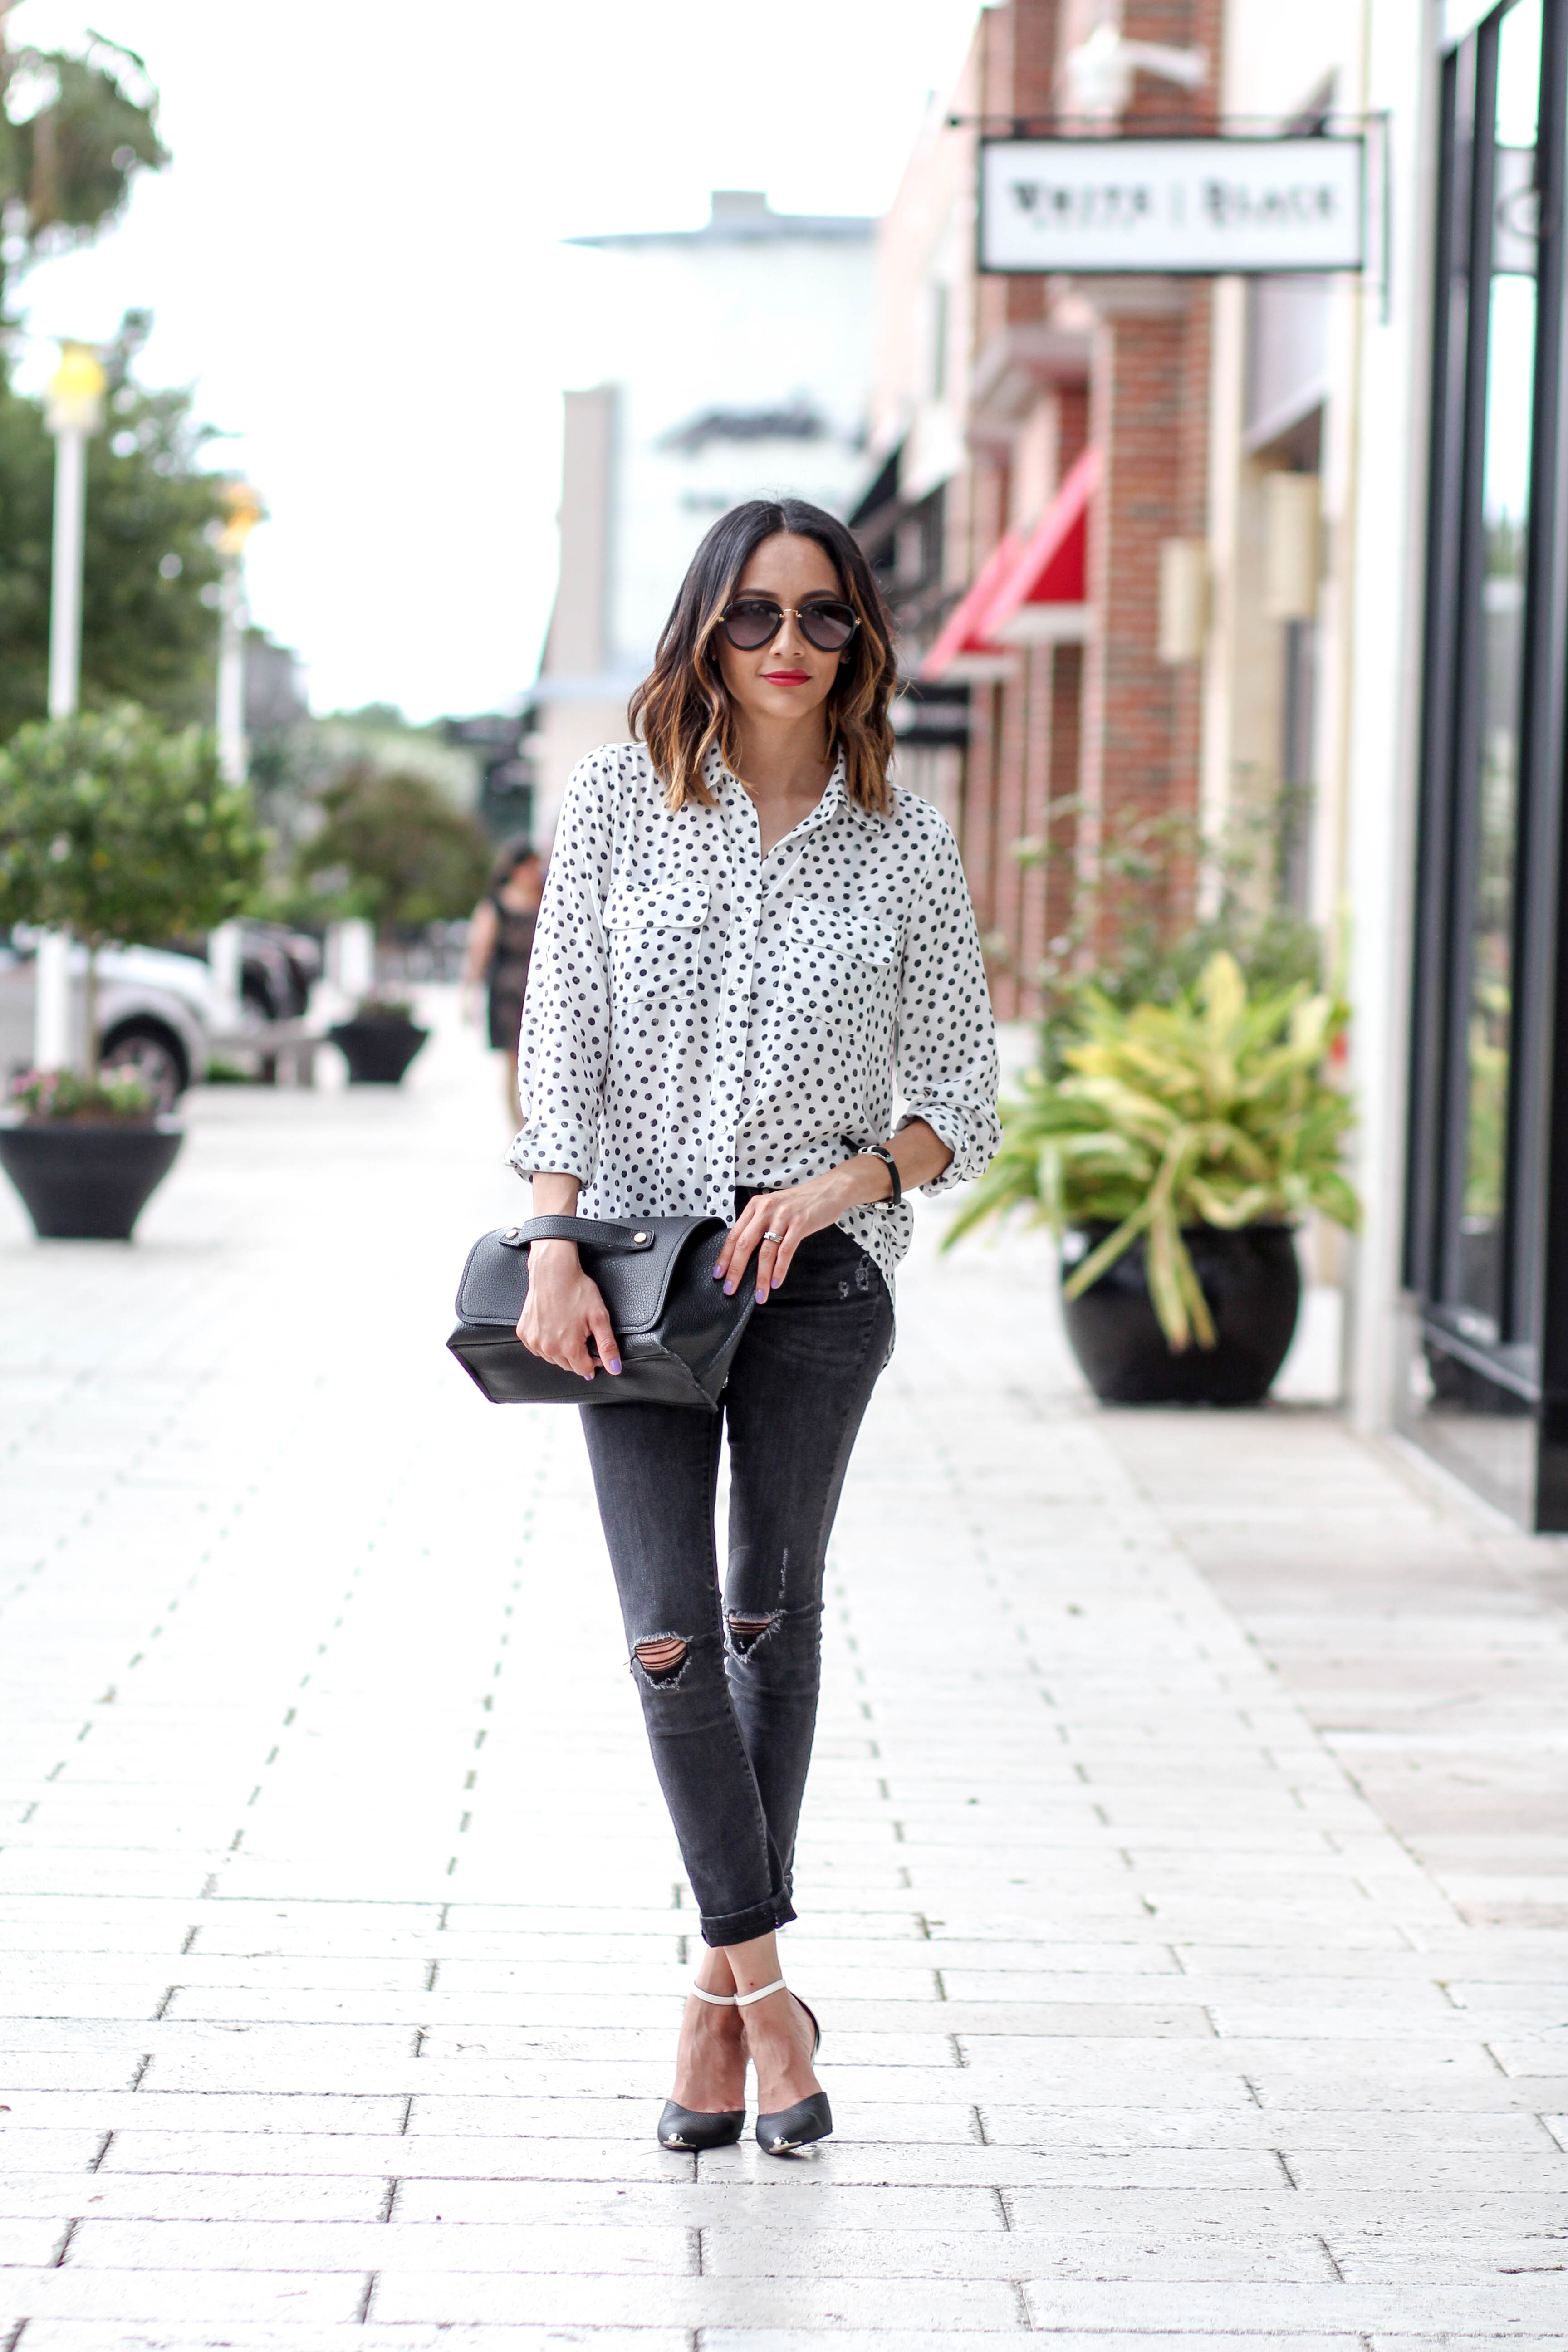 Polka Dotted Shirt   Black Skinny Jeans   Black and White Look